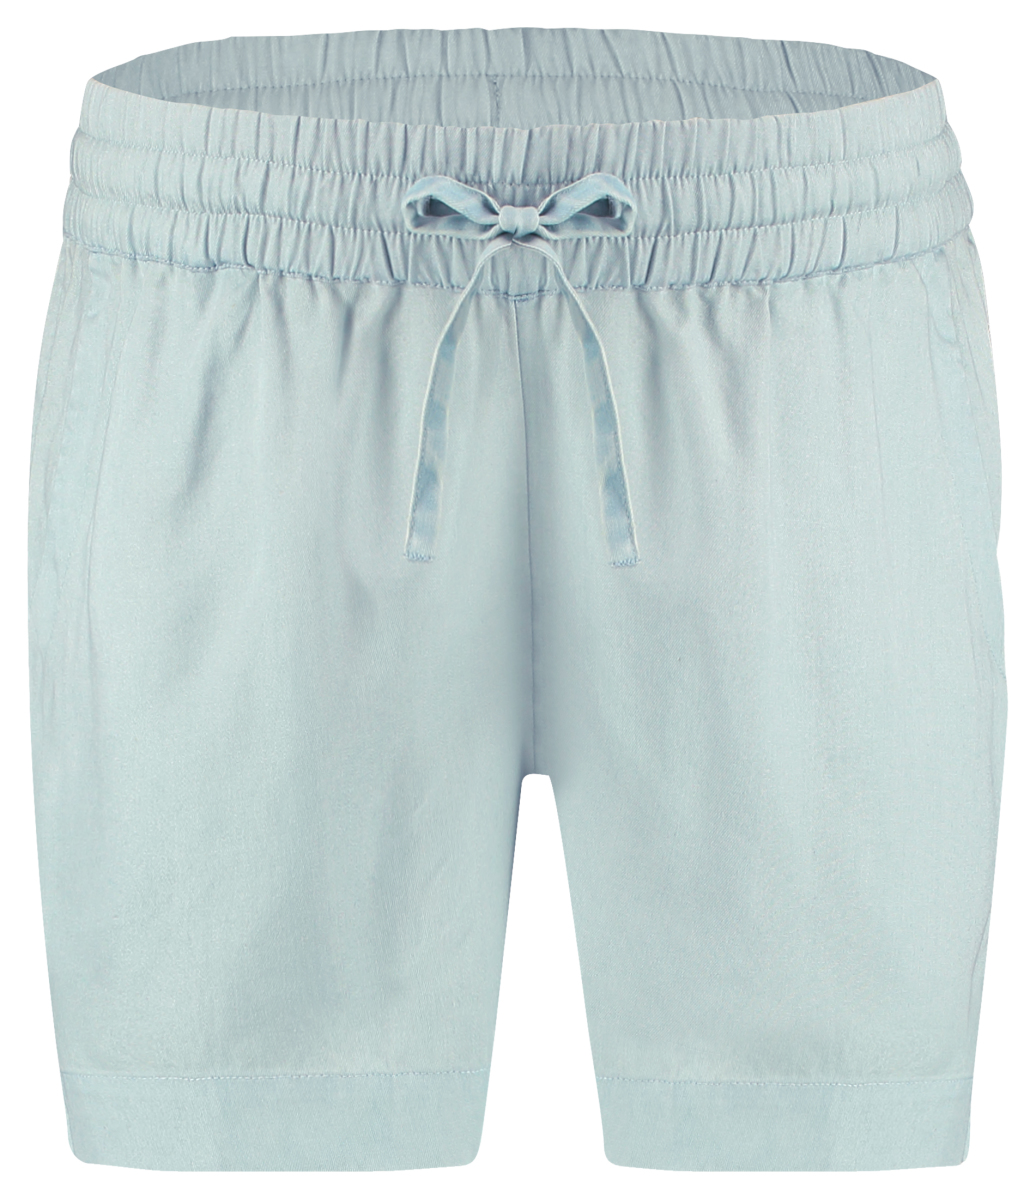 Queen mum Shorts Dhaka forget-me-not